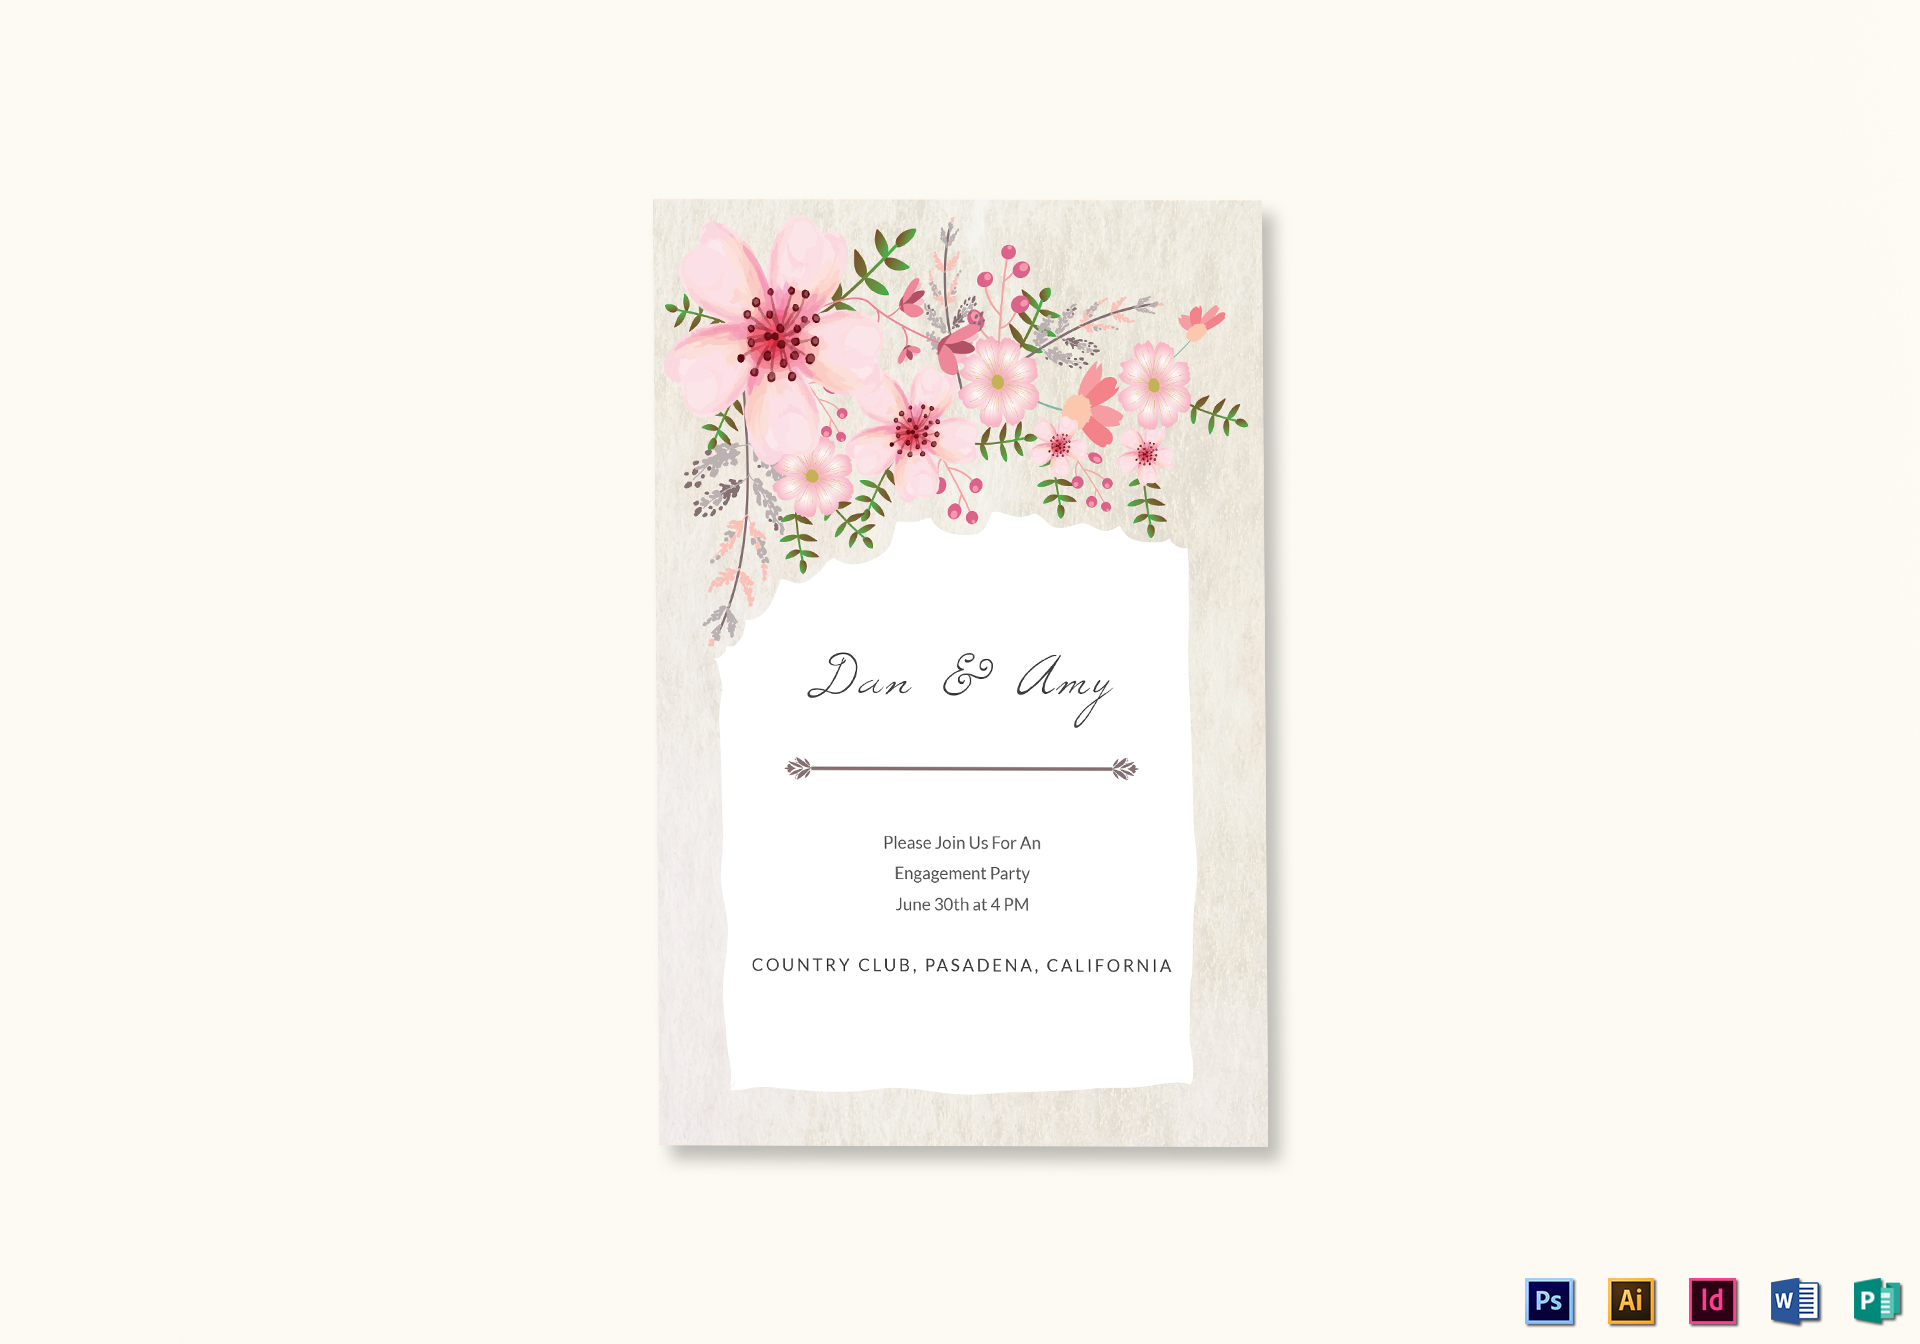 Brand-new Pink Floral Engagement Announcement Card Design Template in PSD  BE69